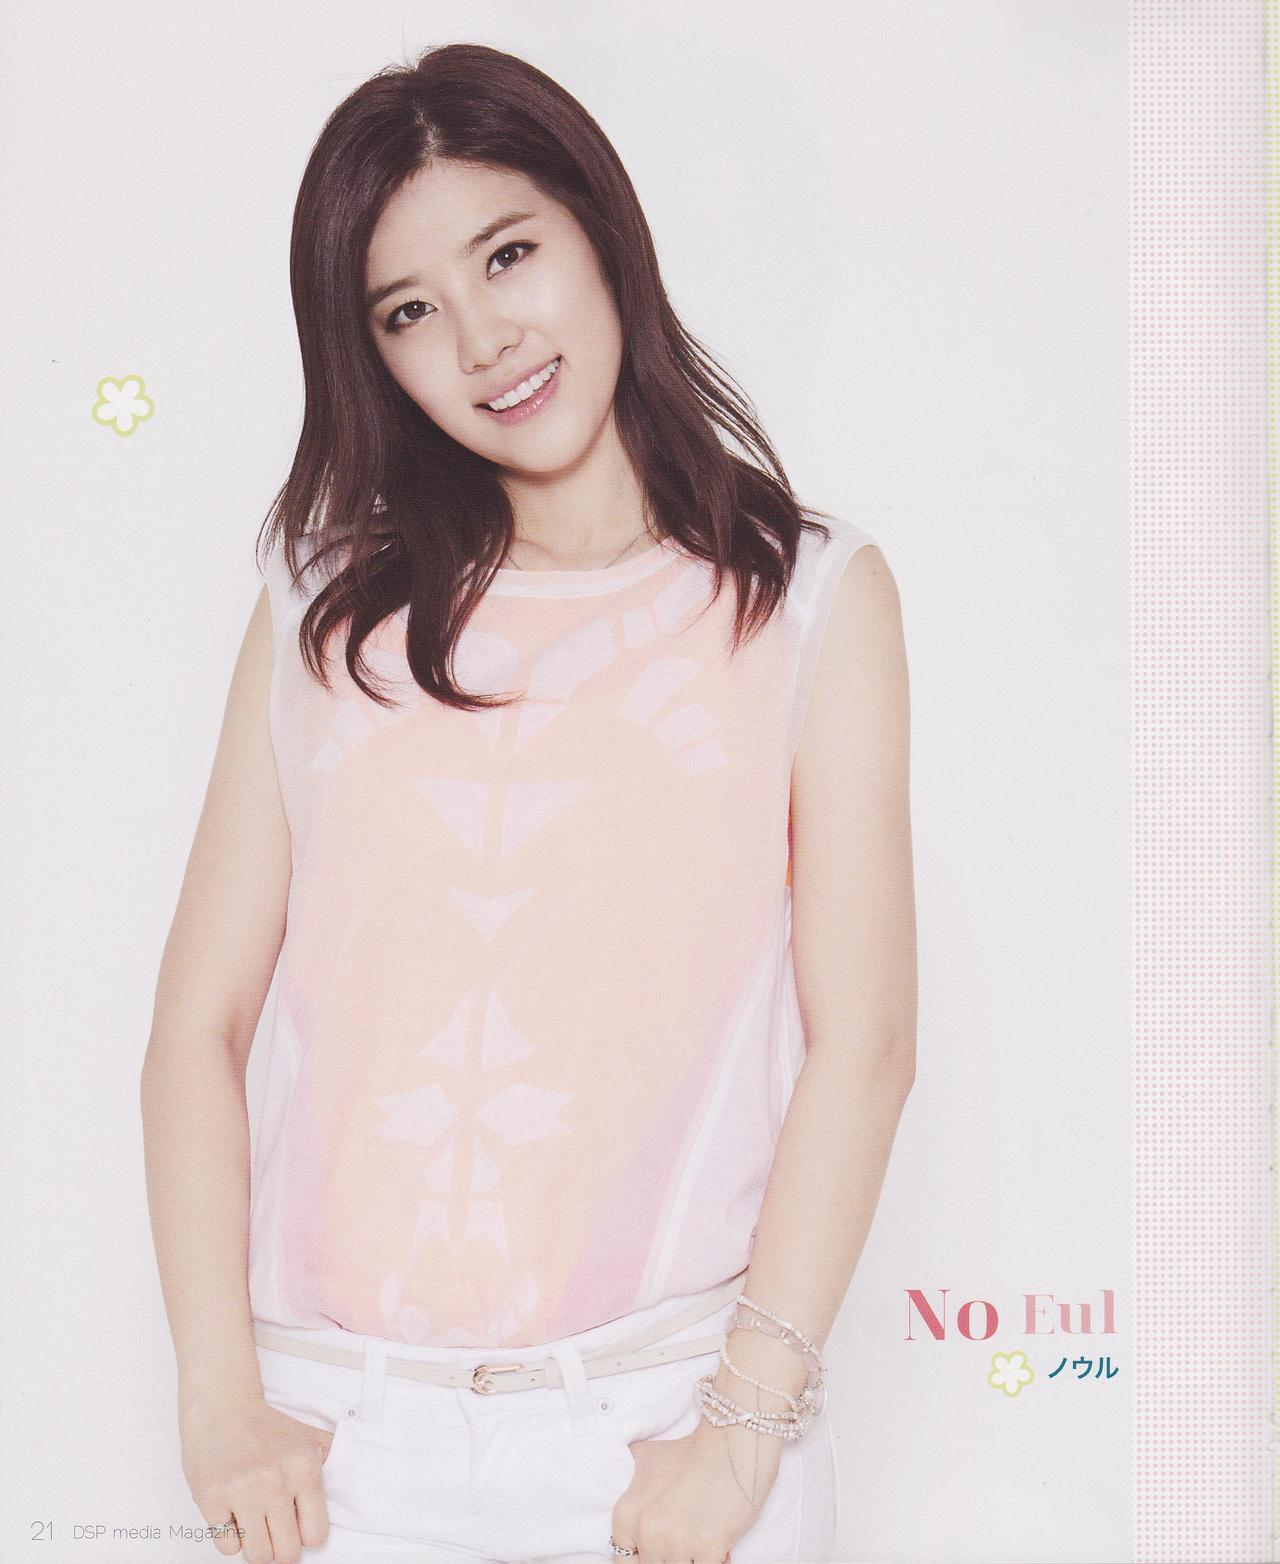 { scans } No Eul @ DSP Colorful vol.4 Tumblr_m9rxl25Zde1r27owuo1_1280